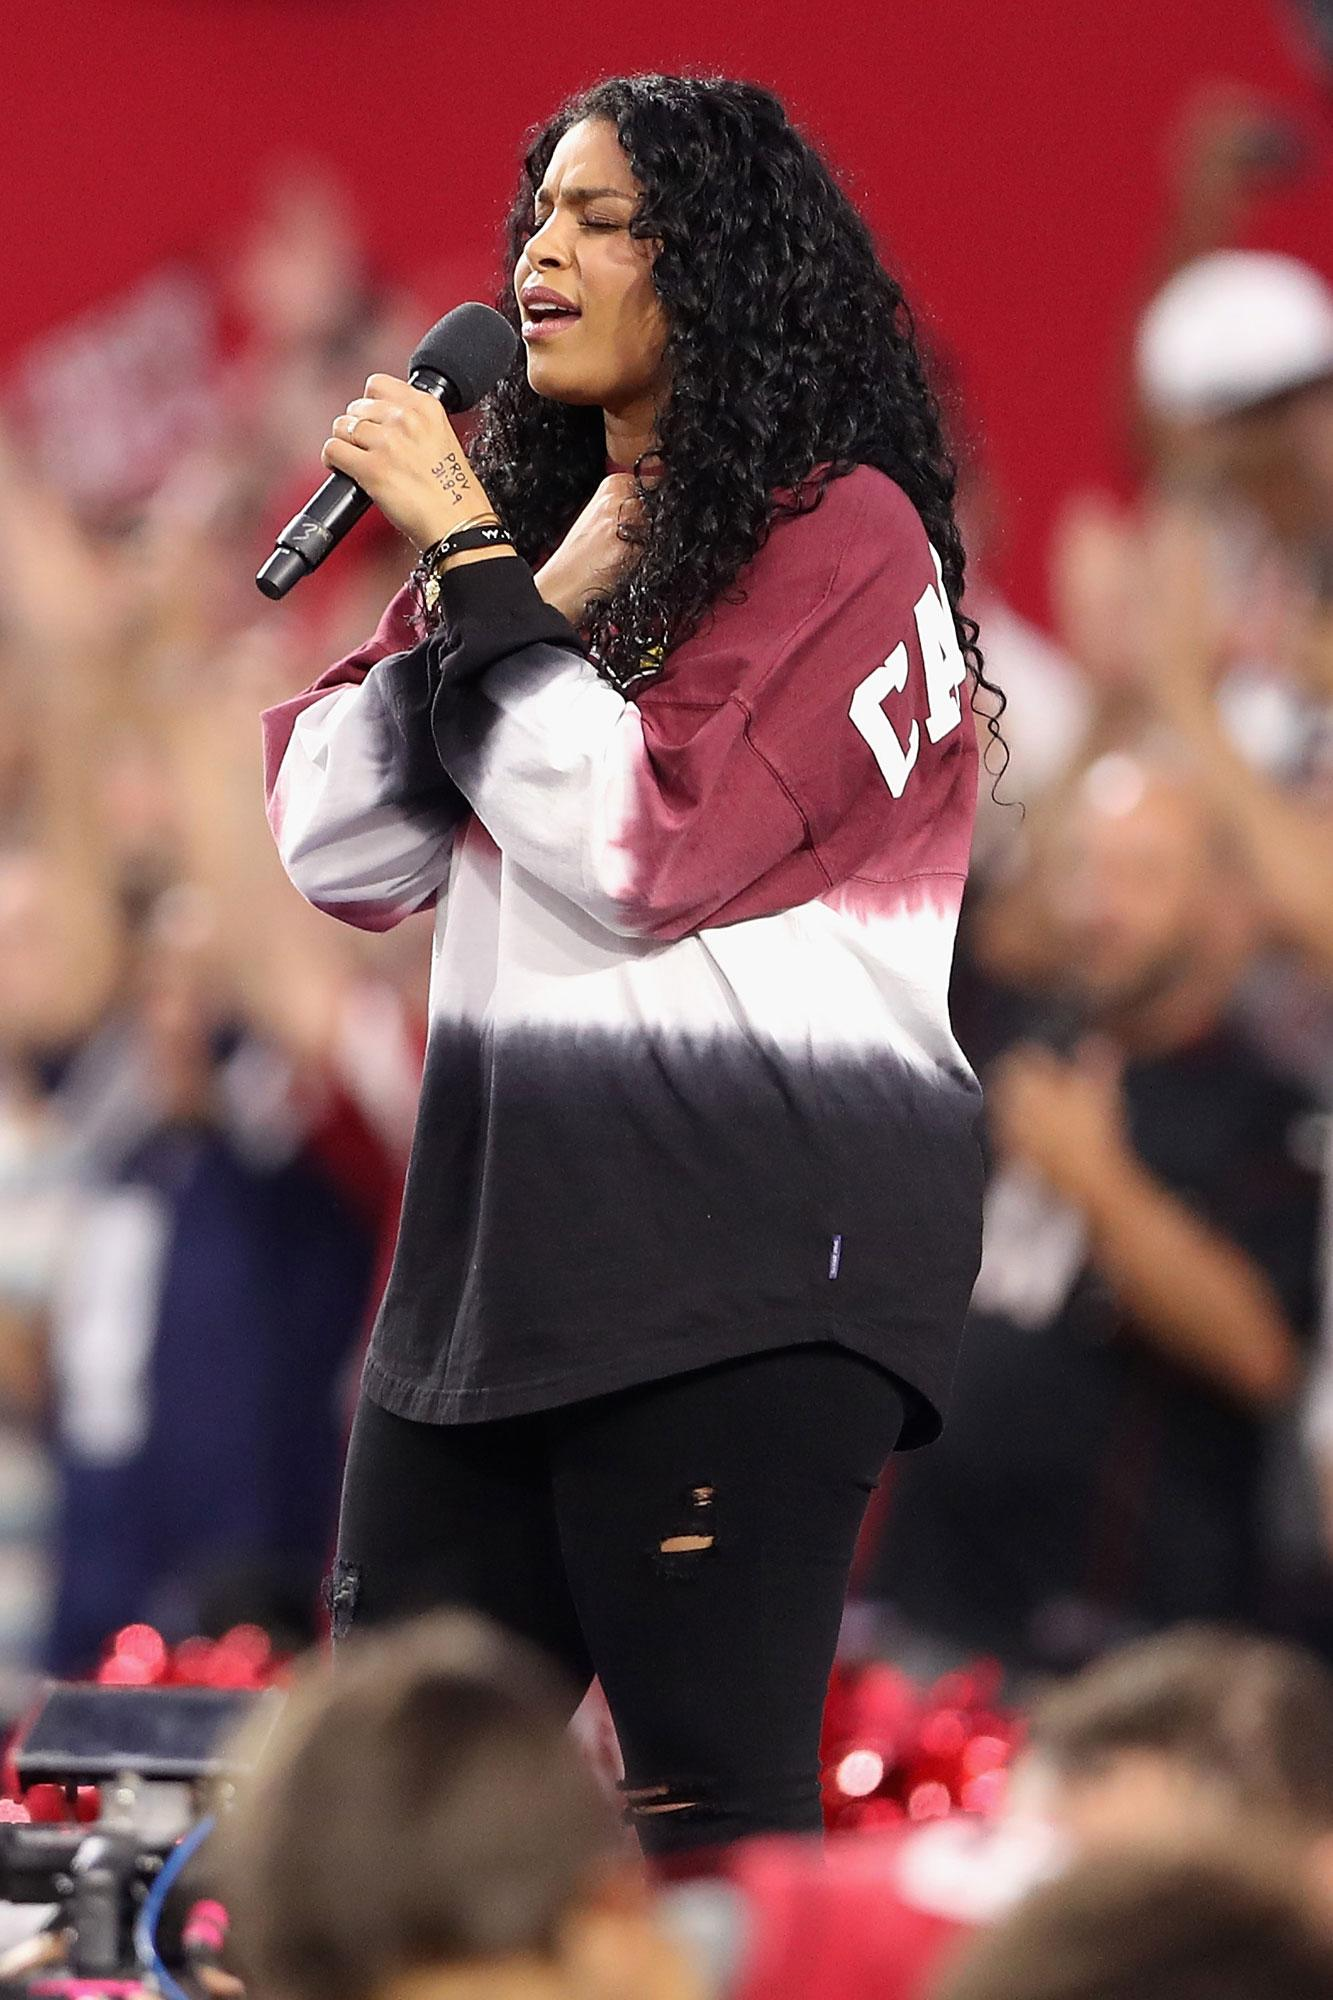 Jordin Sparks Makes Her Own Statement While Singing the National Anthem Before Monday Night's NFL Game